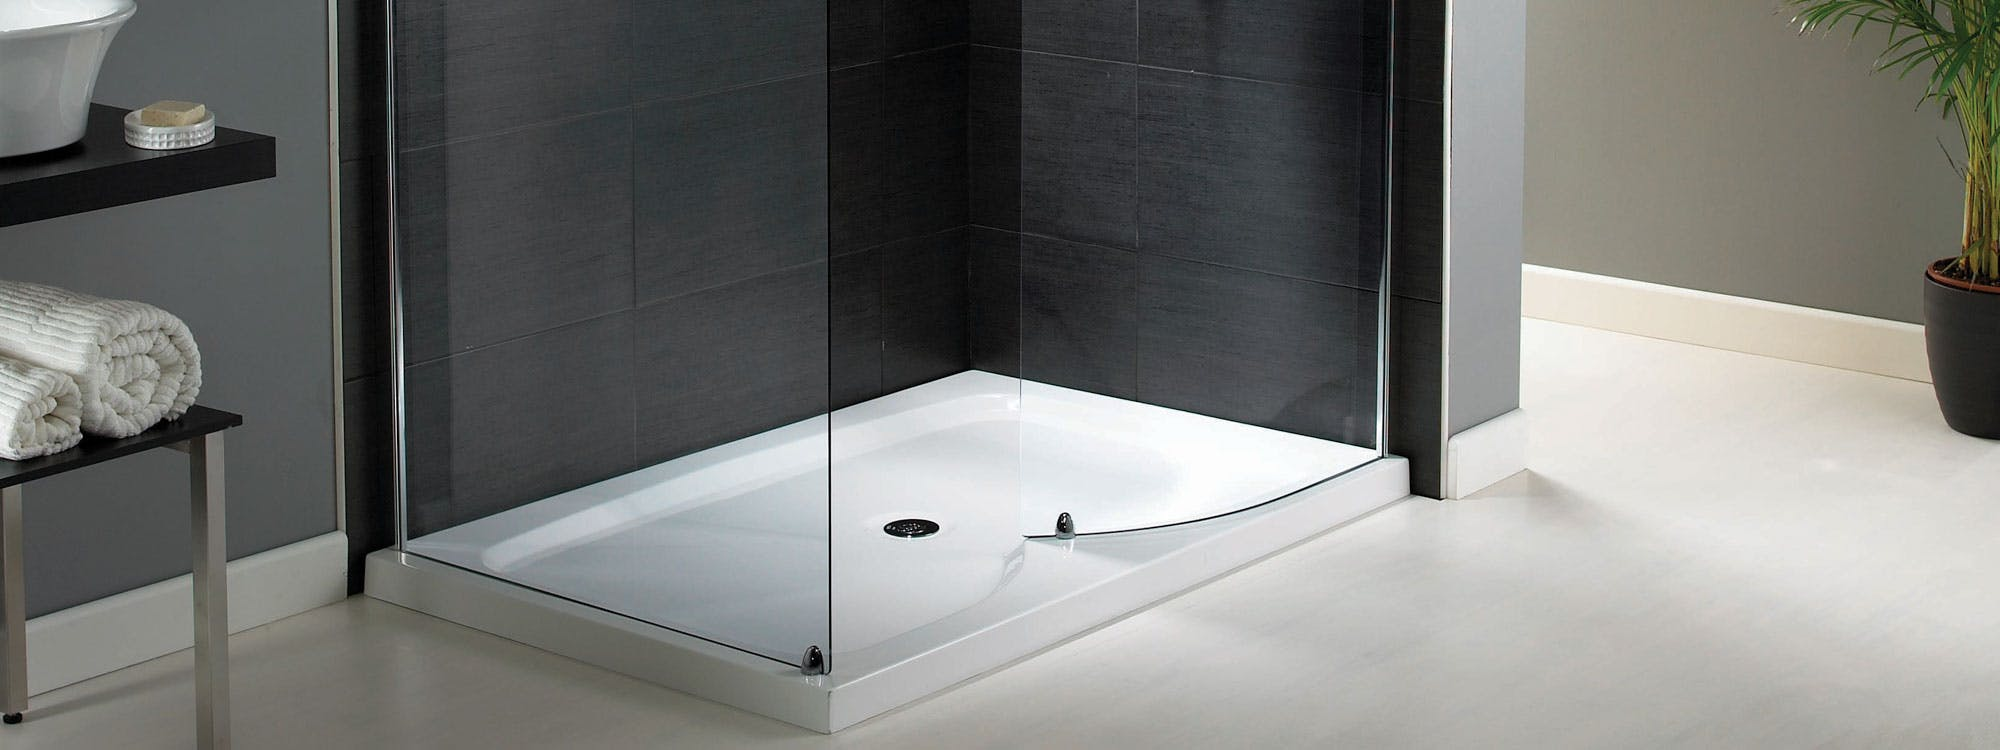 As with all accessible showering & bathing solutions the finishing touches to the overall suite is key to ensuring a stylish design, curved glass screens, chrome mixers and additional safe accessories are a accessible shower must.